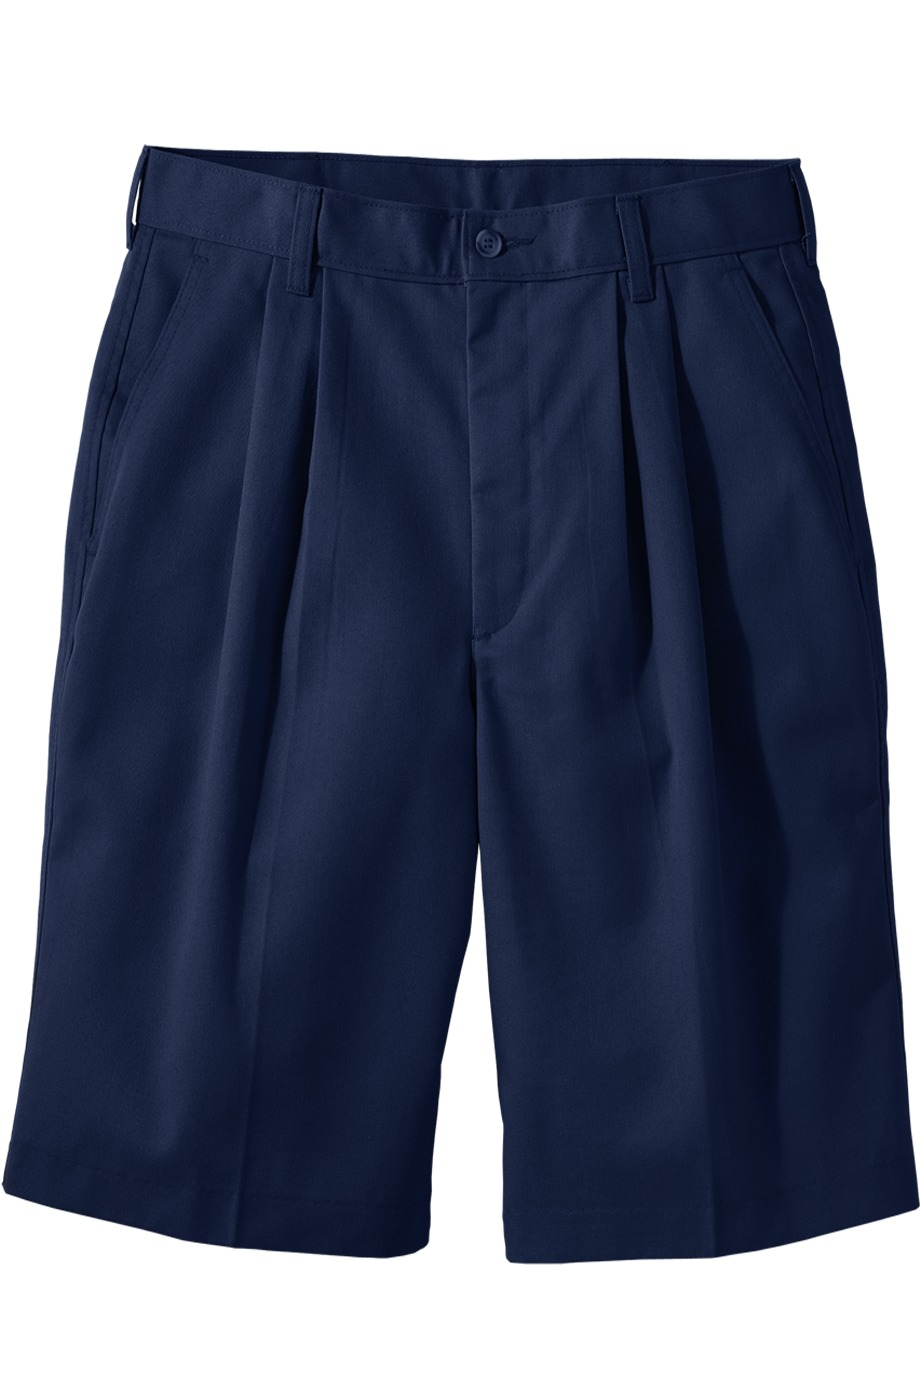 Edwards Garment 2480 - Men's Pleated Short